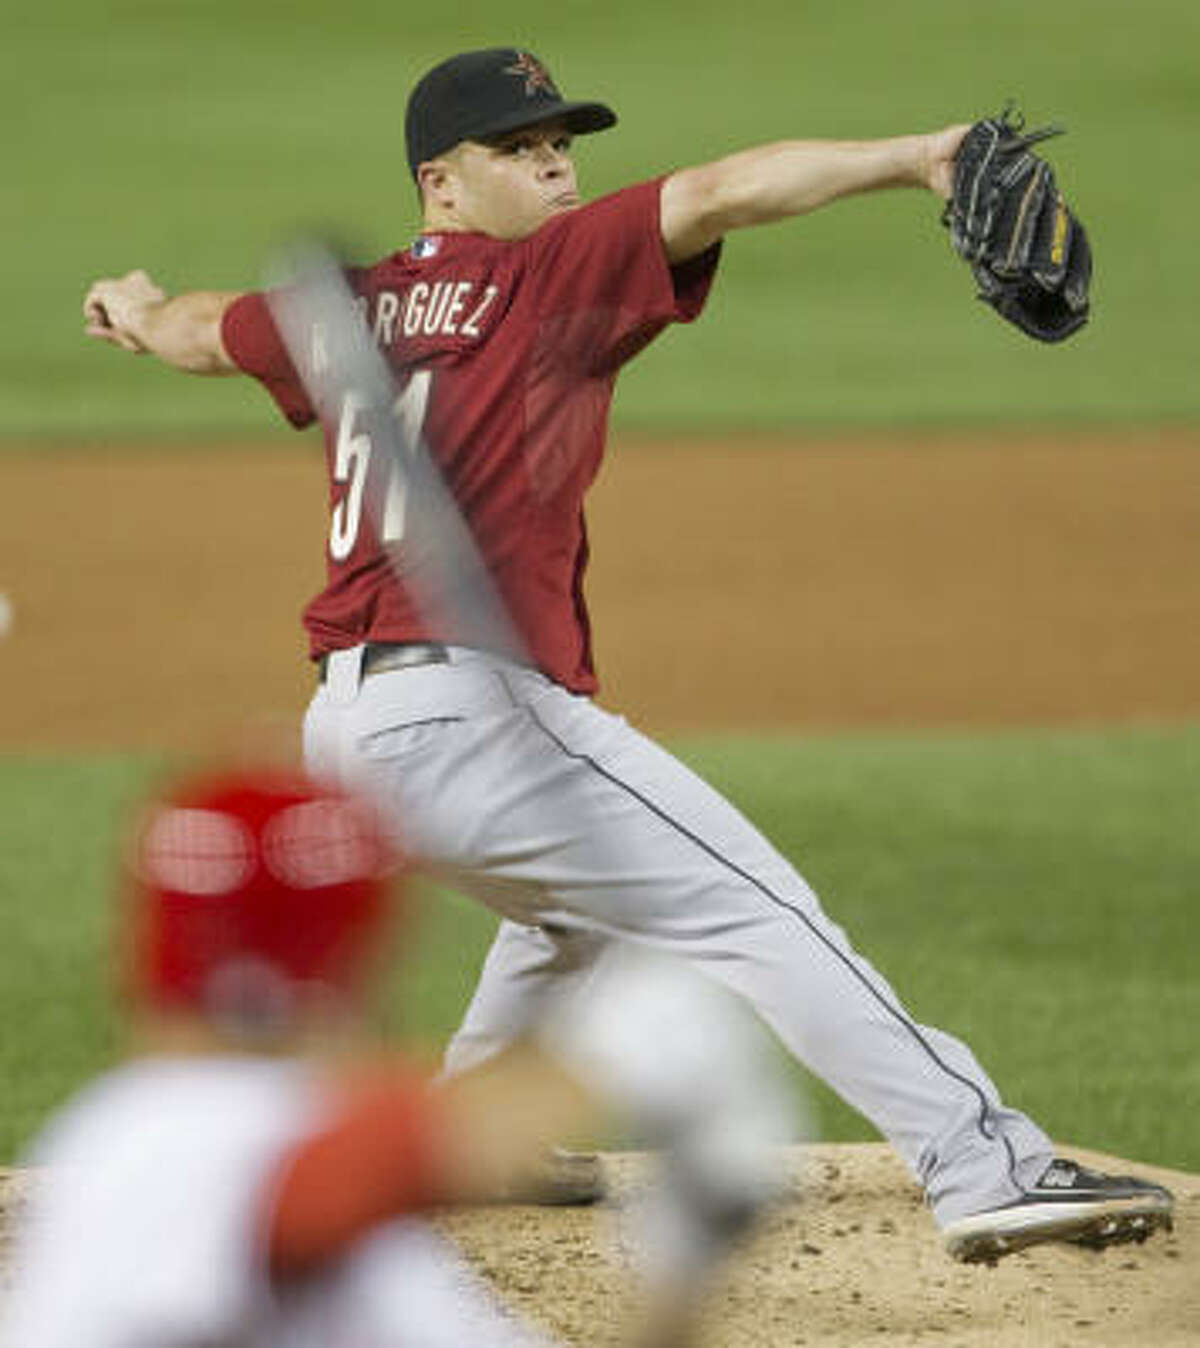 Astros starter pitcher Wandy Rodriguez surpassed the 100-pitch mark against the Nationals.